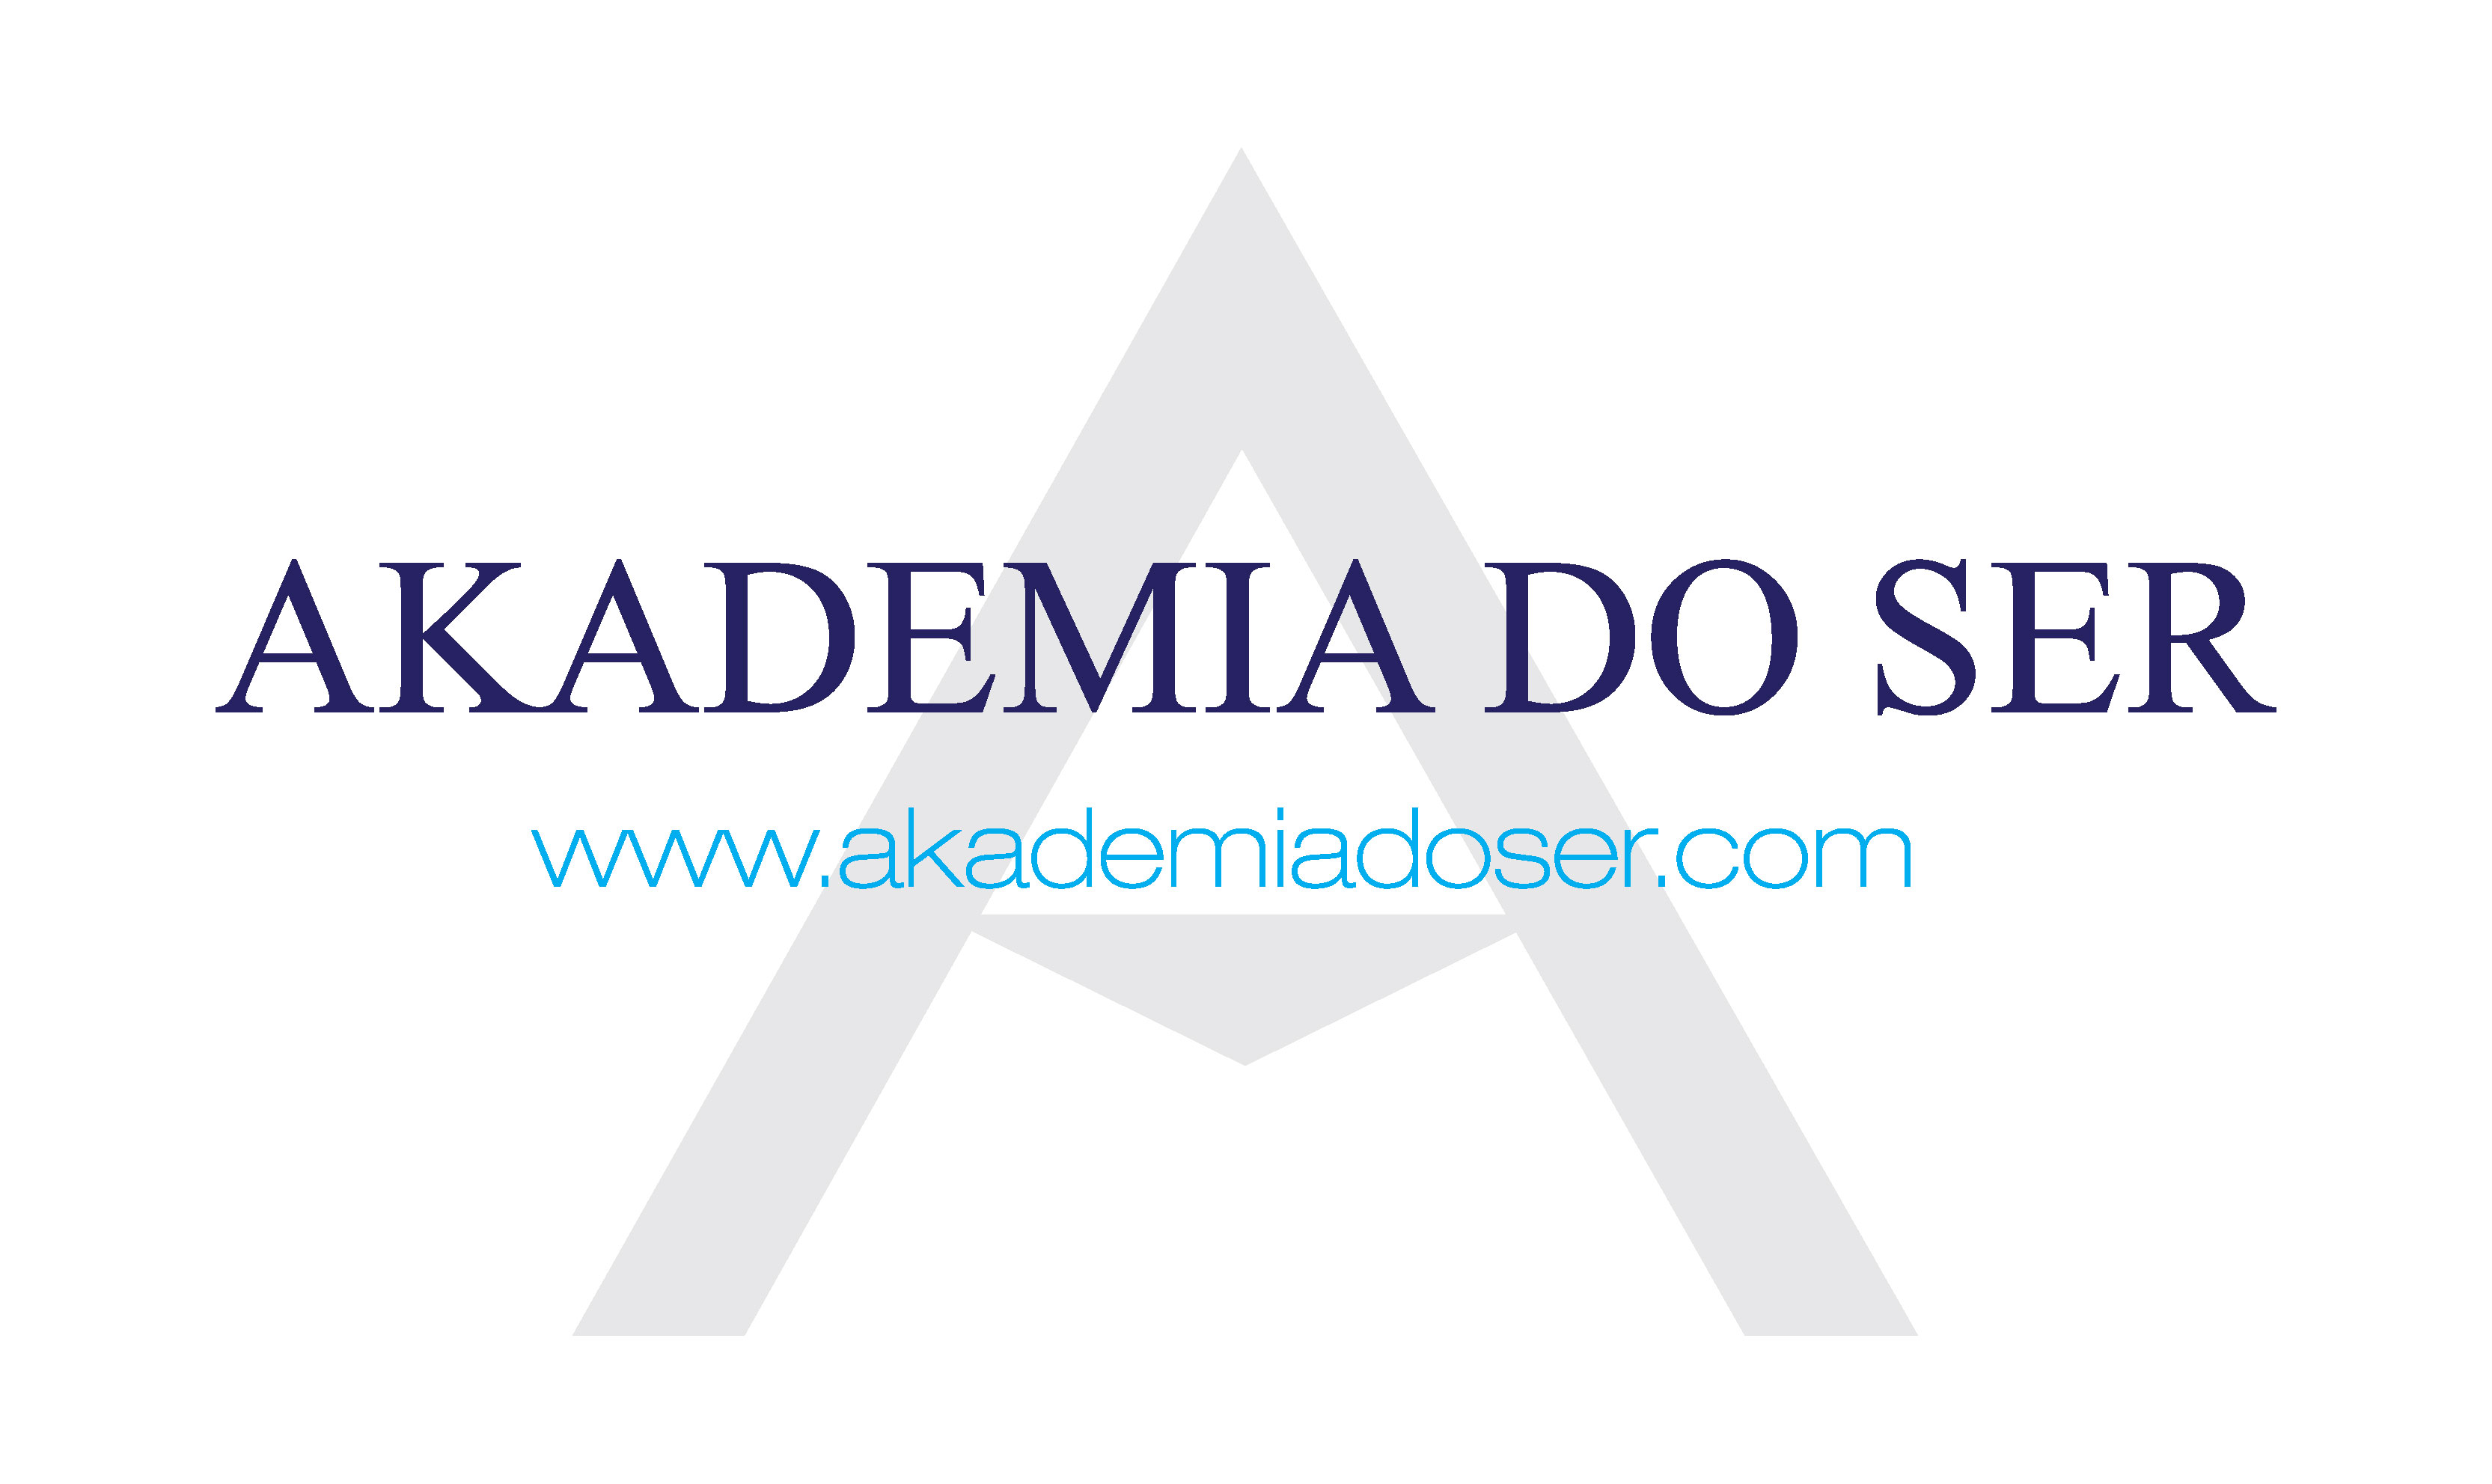 logo Akademia do Ser